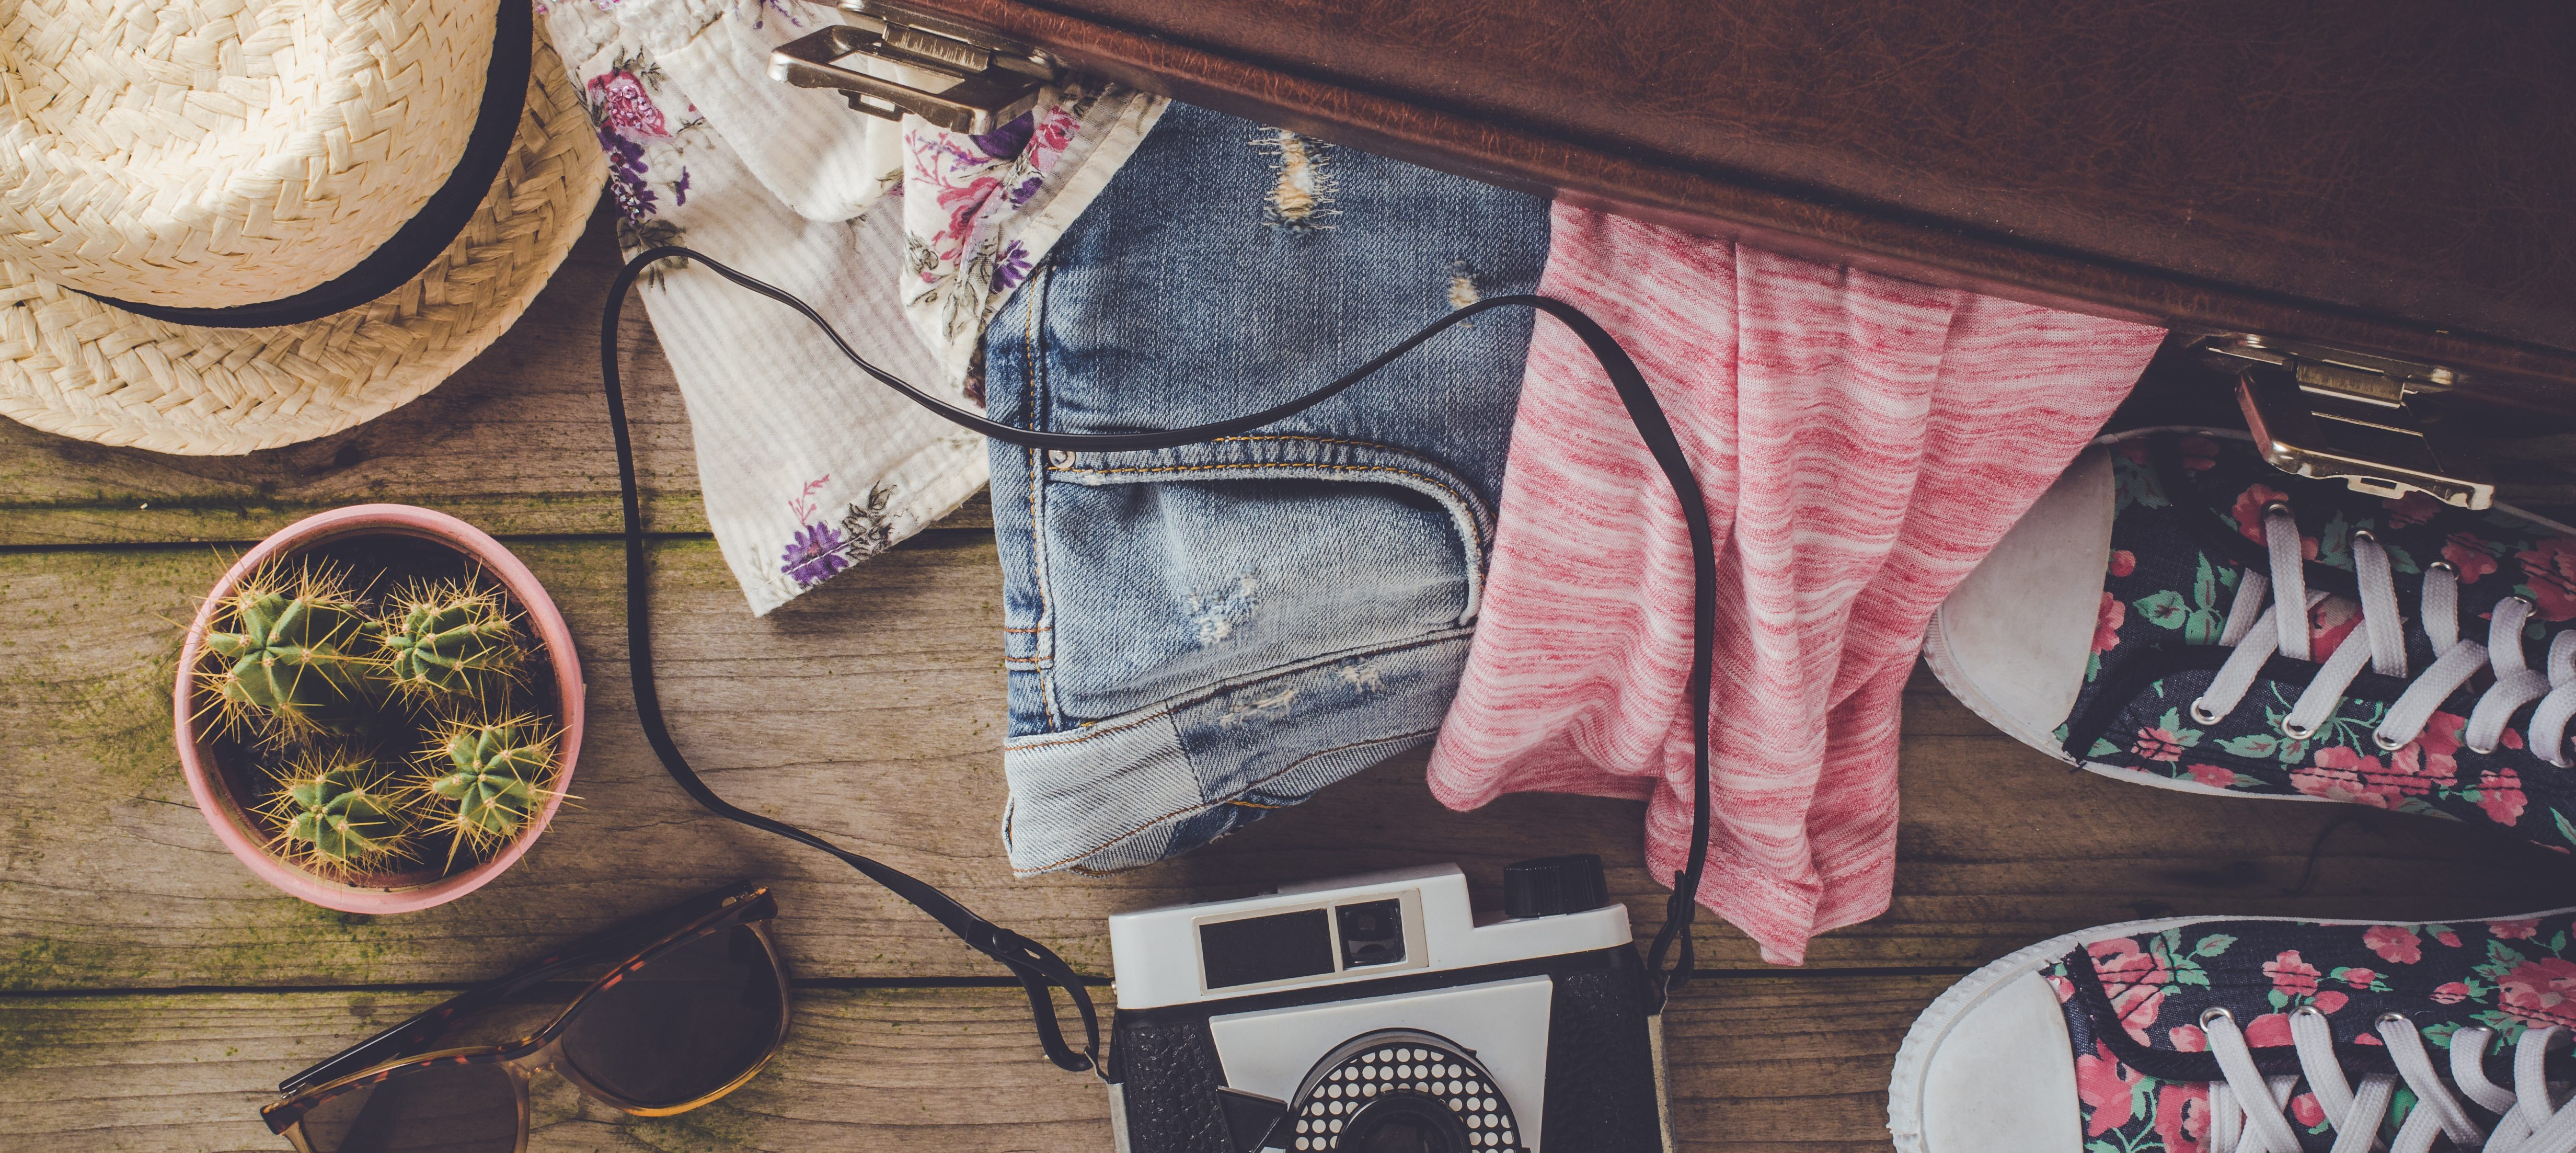 Spring break on a budget by planning ahead, not by cutting back on the fun